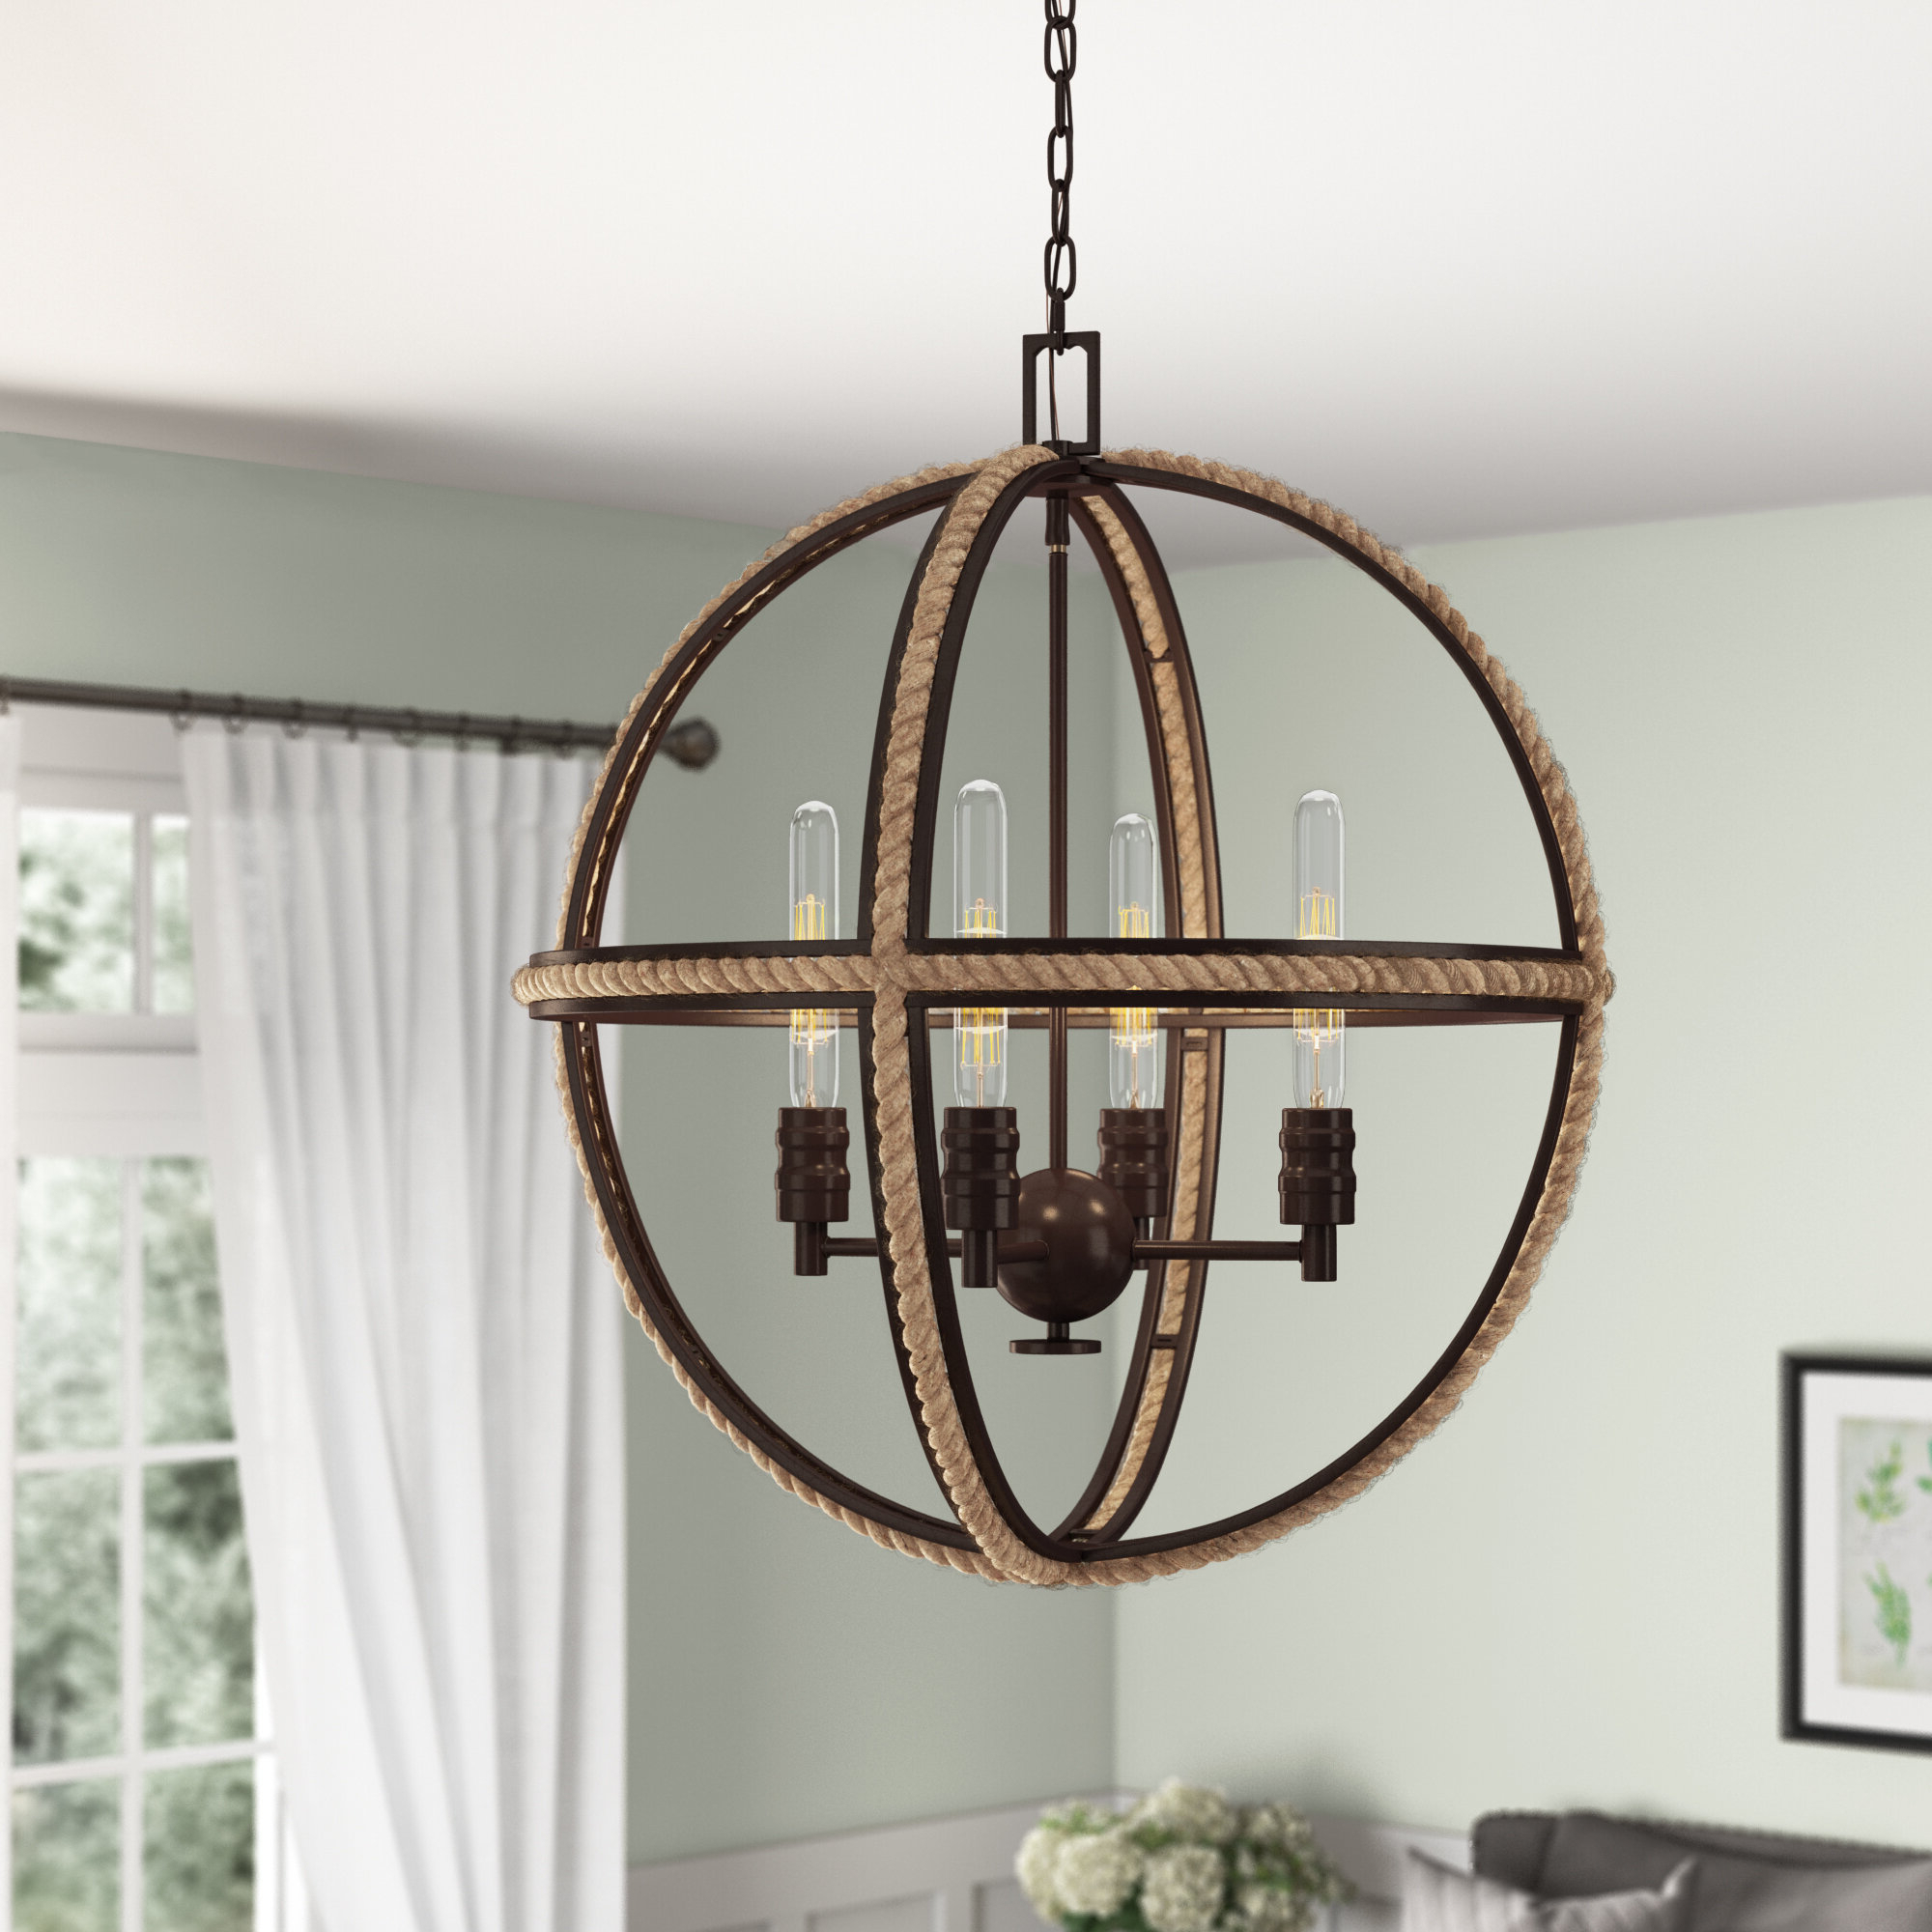 2019 Kennett 4-Light Globe Chandelier inside Donna 6-Light Globe Chandeliers